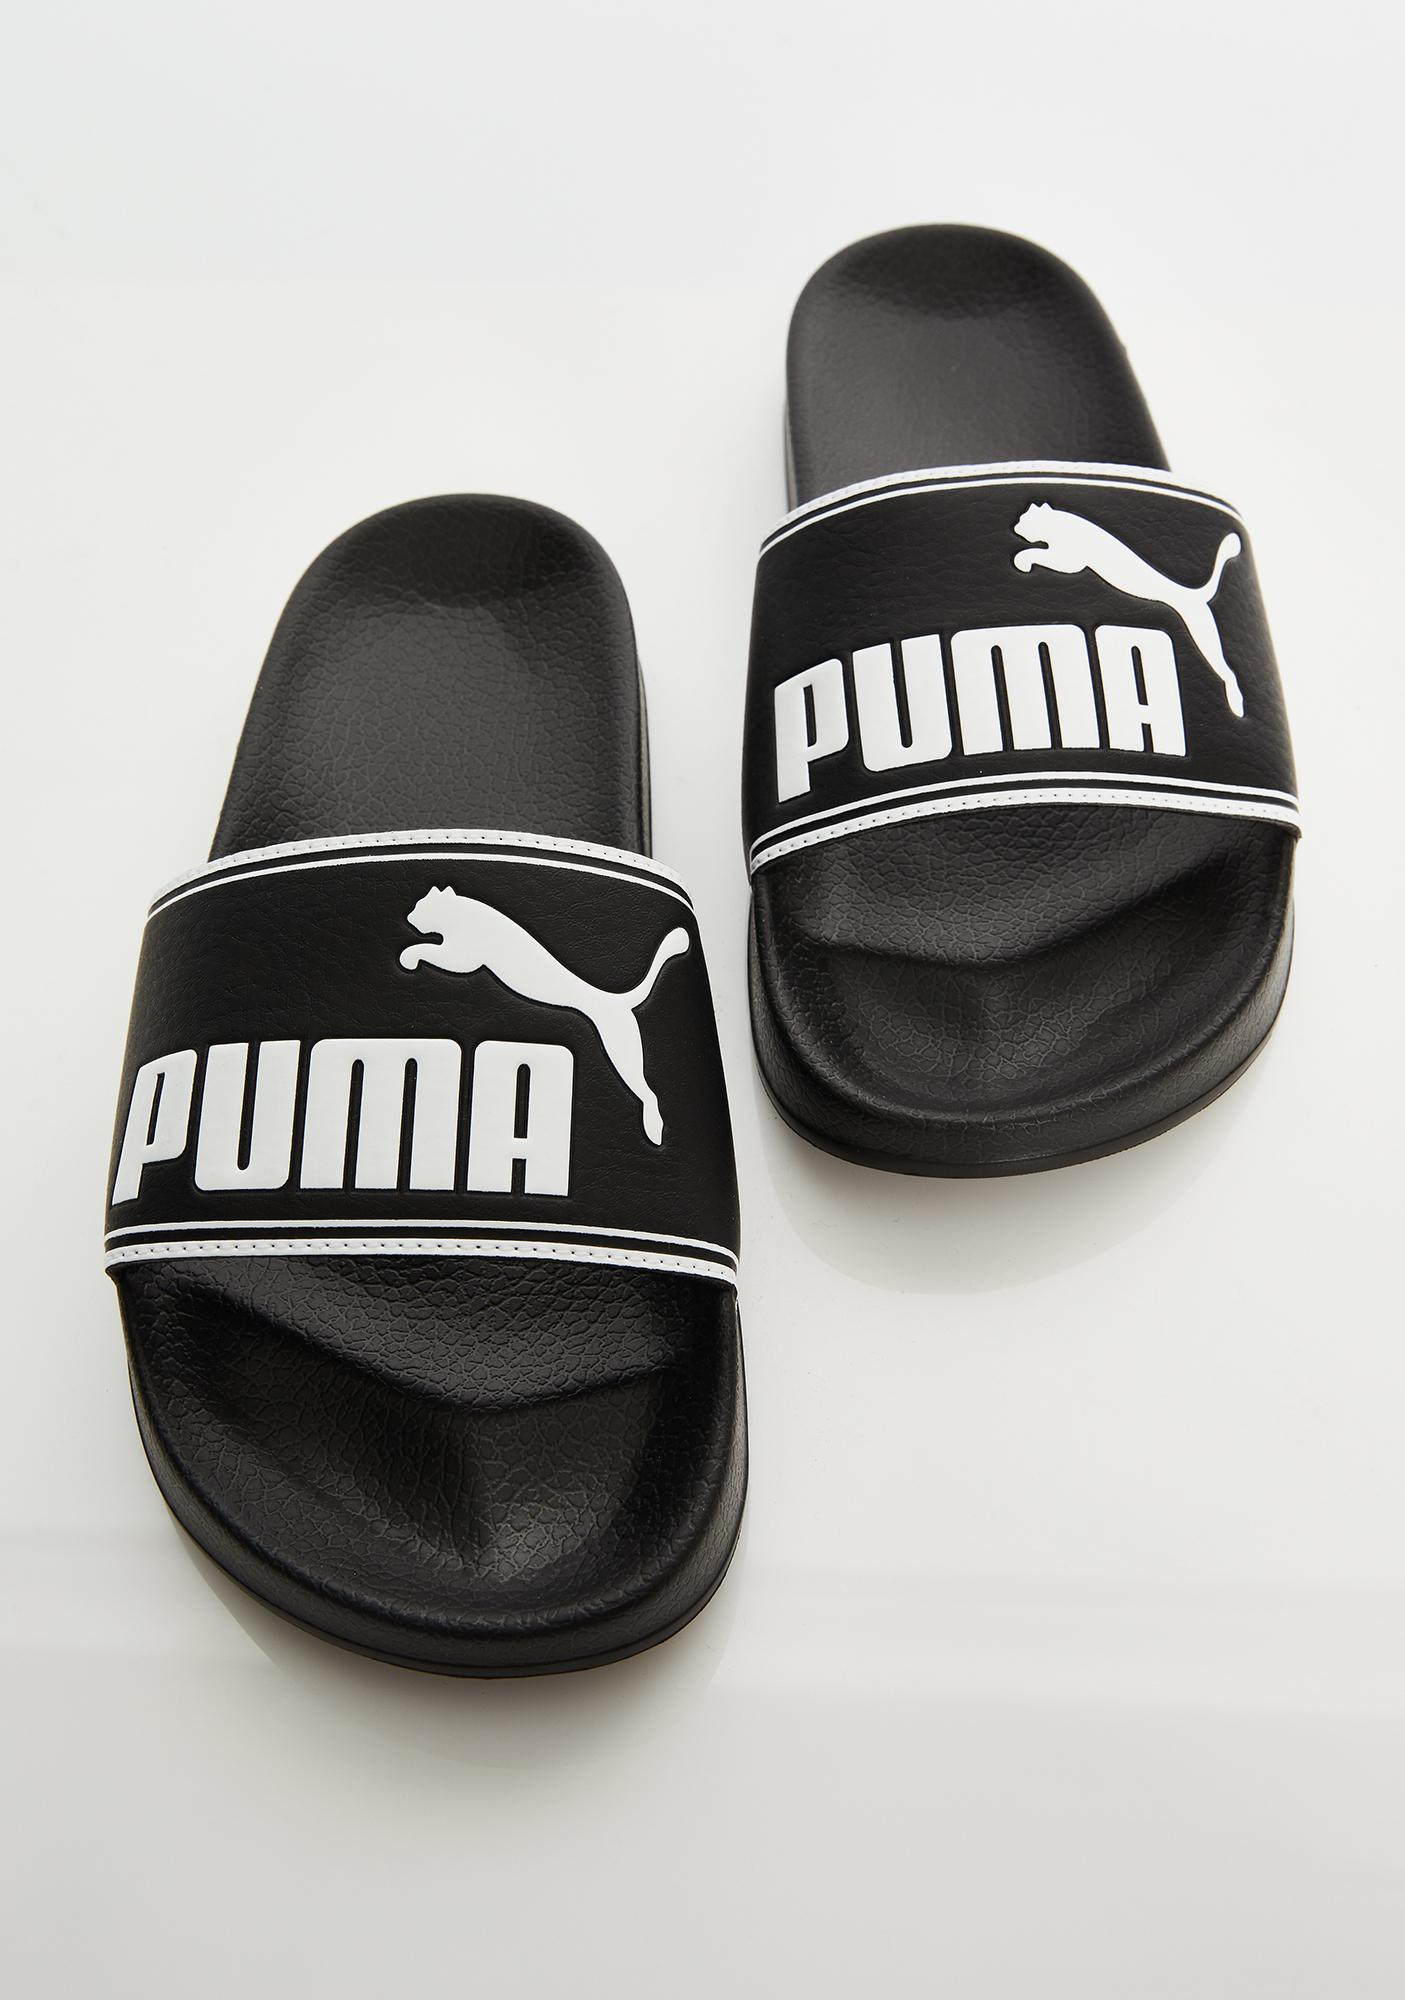 PUMA Dark Leadcat Slides